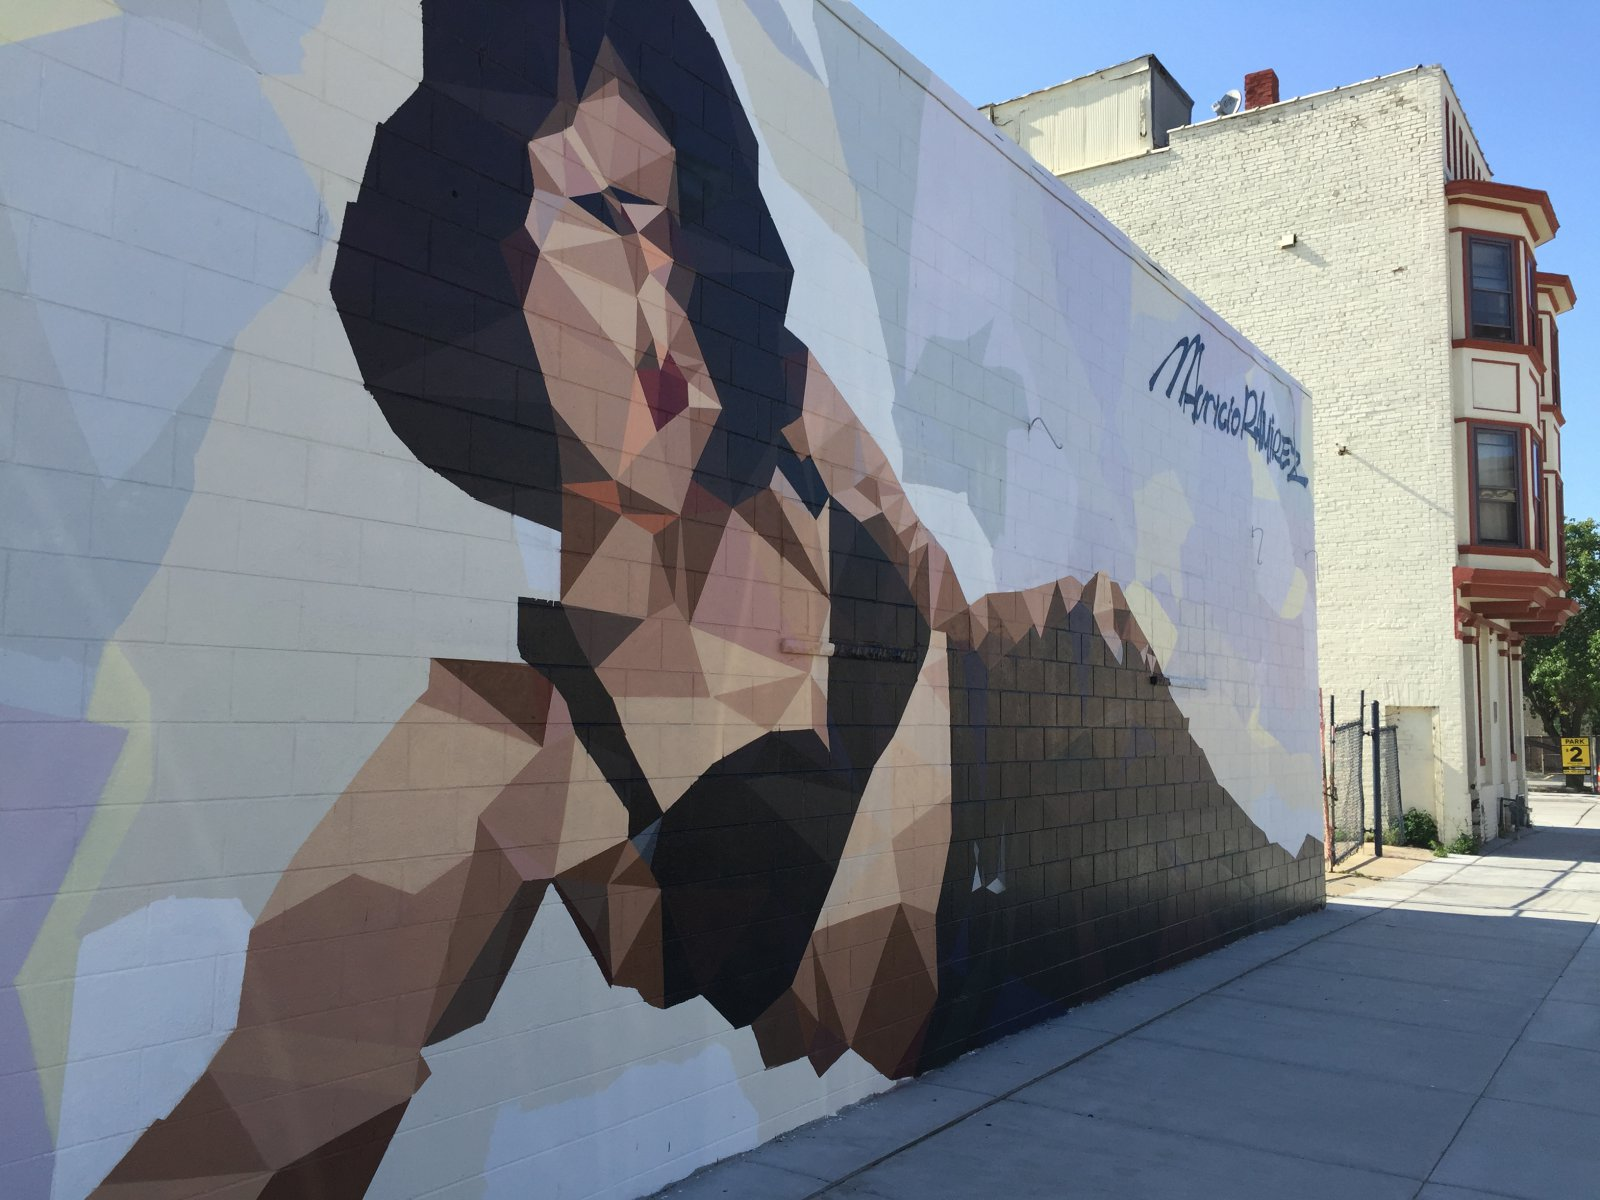 Selena Themed Art Festival Set To Take Place This Weekend